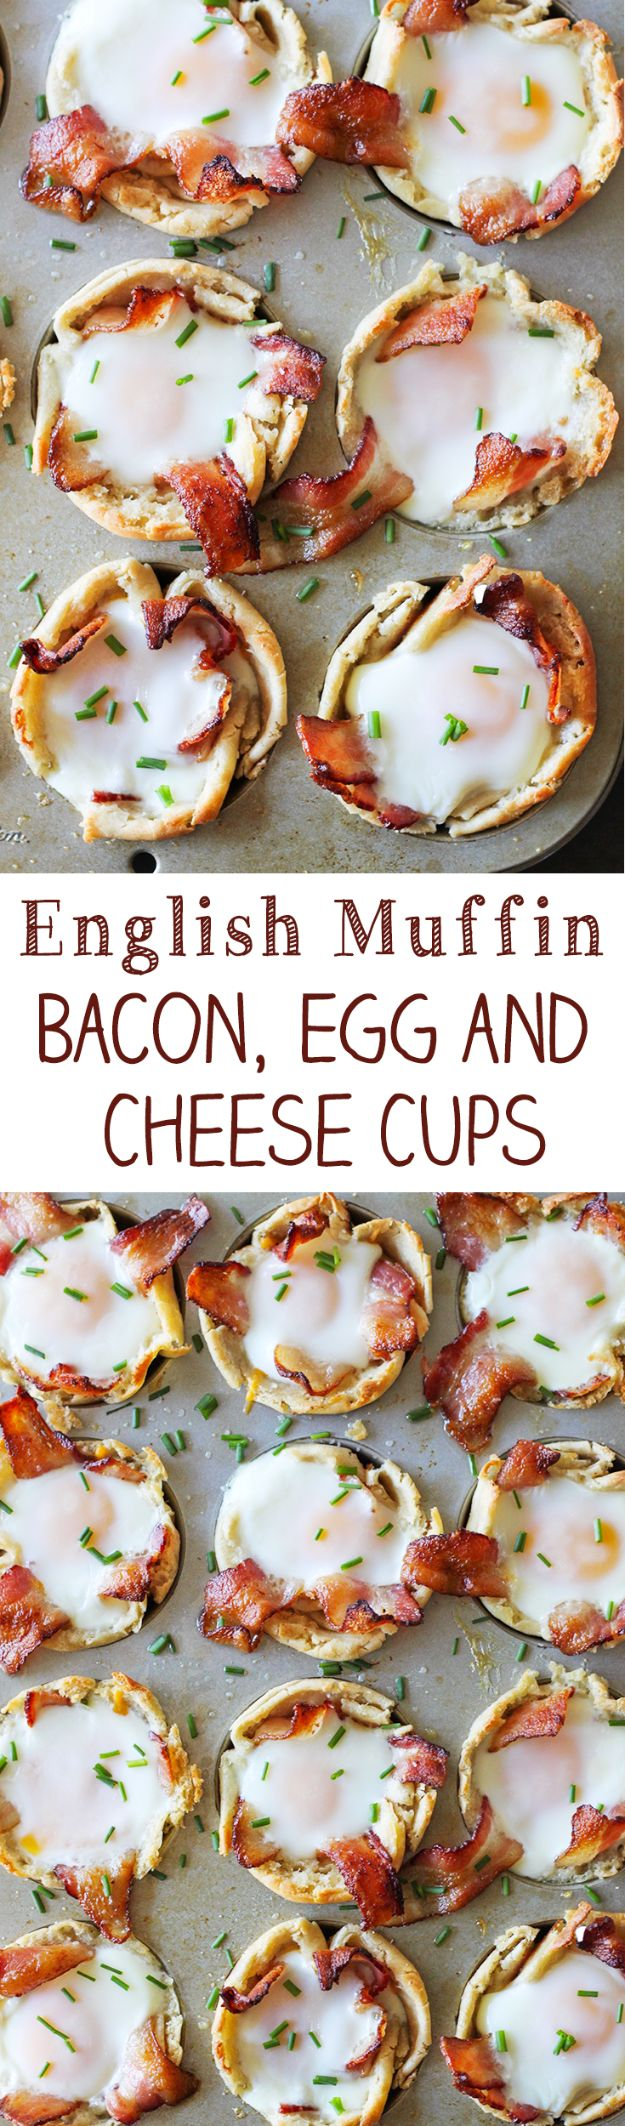 Best Recipes for the Cheese Lover - English Muffin Bacon Egg and Cheese Cups - Easy Recipe Ideas With Cheese - Homemade Appetizers, Dips, Dinners, Snacks, Pasta Dishes, Healthy Lunches and Soups Made With Your Favorite Cheeses - Ricotta, Cheddar, Swiss, Parmesan, Goat Chevre, Mozzarella and Feta Ideas - Grilled, Healthy, Vegan and Vegetarian #cheeserecipes #recipes #recipeideas #cheese #cheeserecipe http://diyjoy.com/best-recipes-cheese-lover